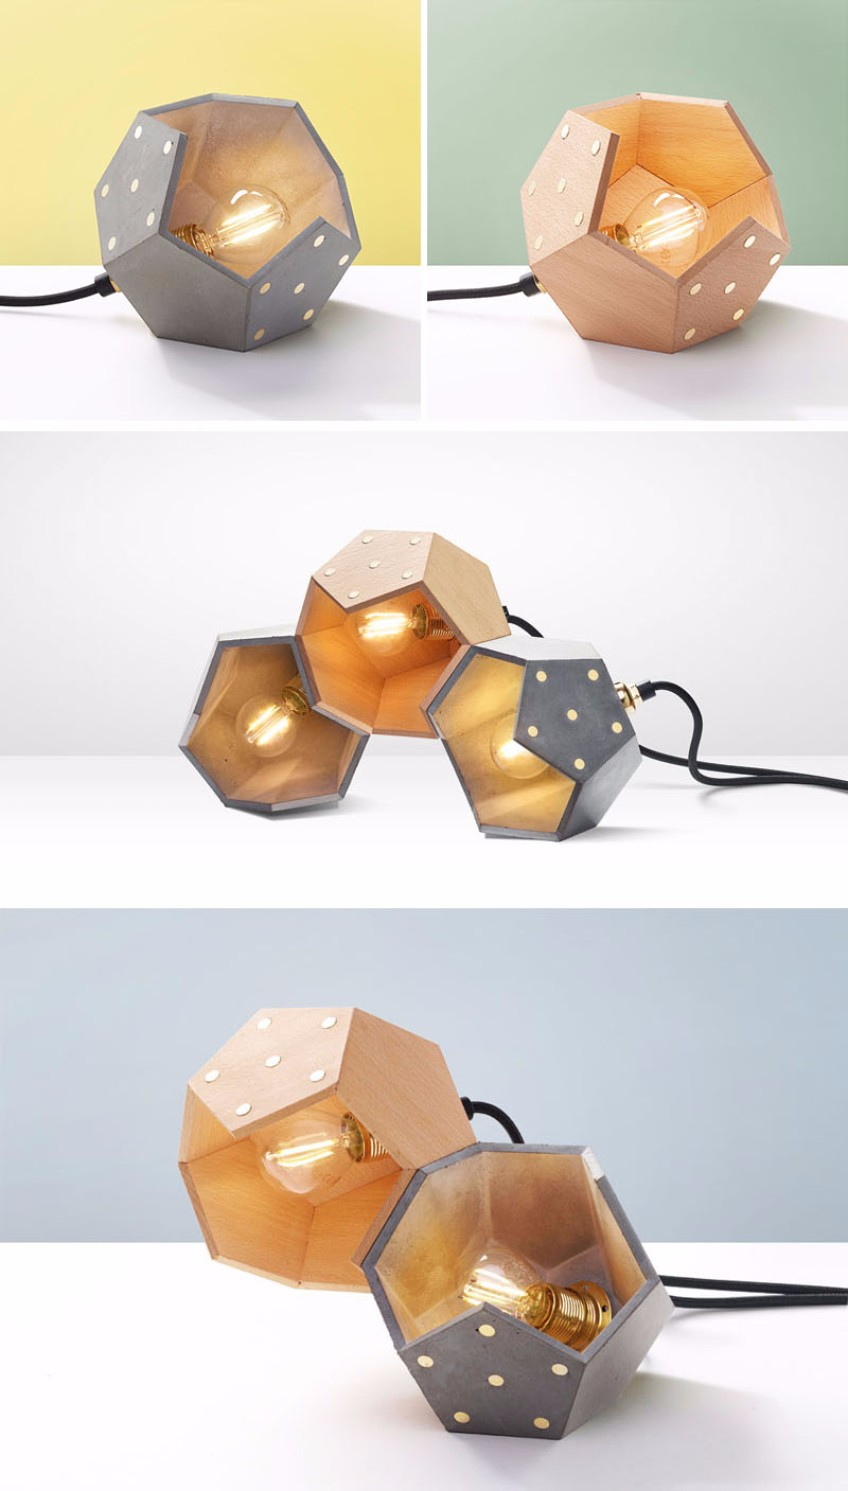 Lighting Design Meet These Wood Magnetic Lamps by Plato Design lighting design Lighting Design: Meet These Wood Magnetic Lamps by Plato Design Lighting Design Meet These Wood Magnetic Lamps by Plato Design 1